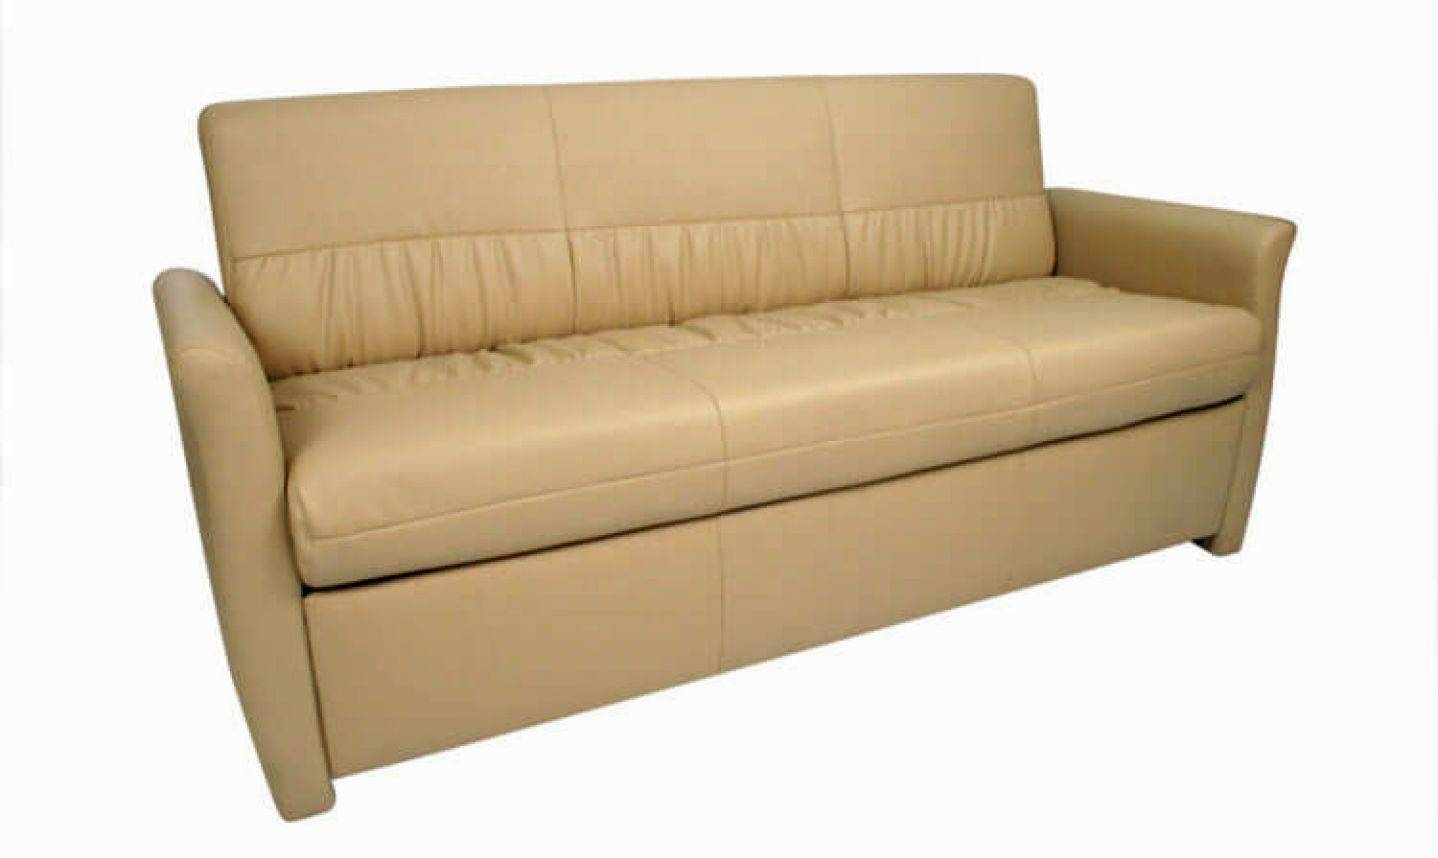 Sofa : Rv Jackknife Sofa Replacement Memorable Rv Jackknife Sofa regarding Rv Jackknife Sofas (Image 11 of 15)